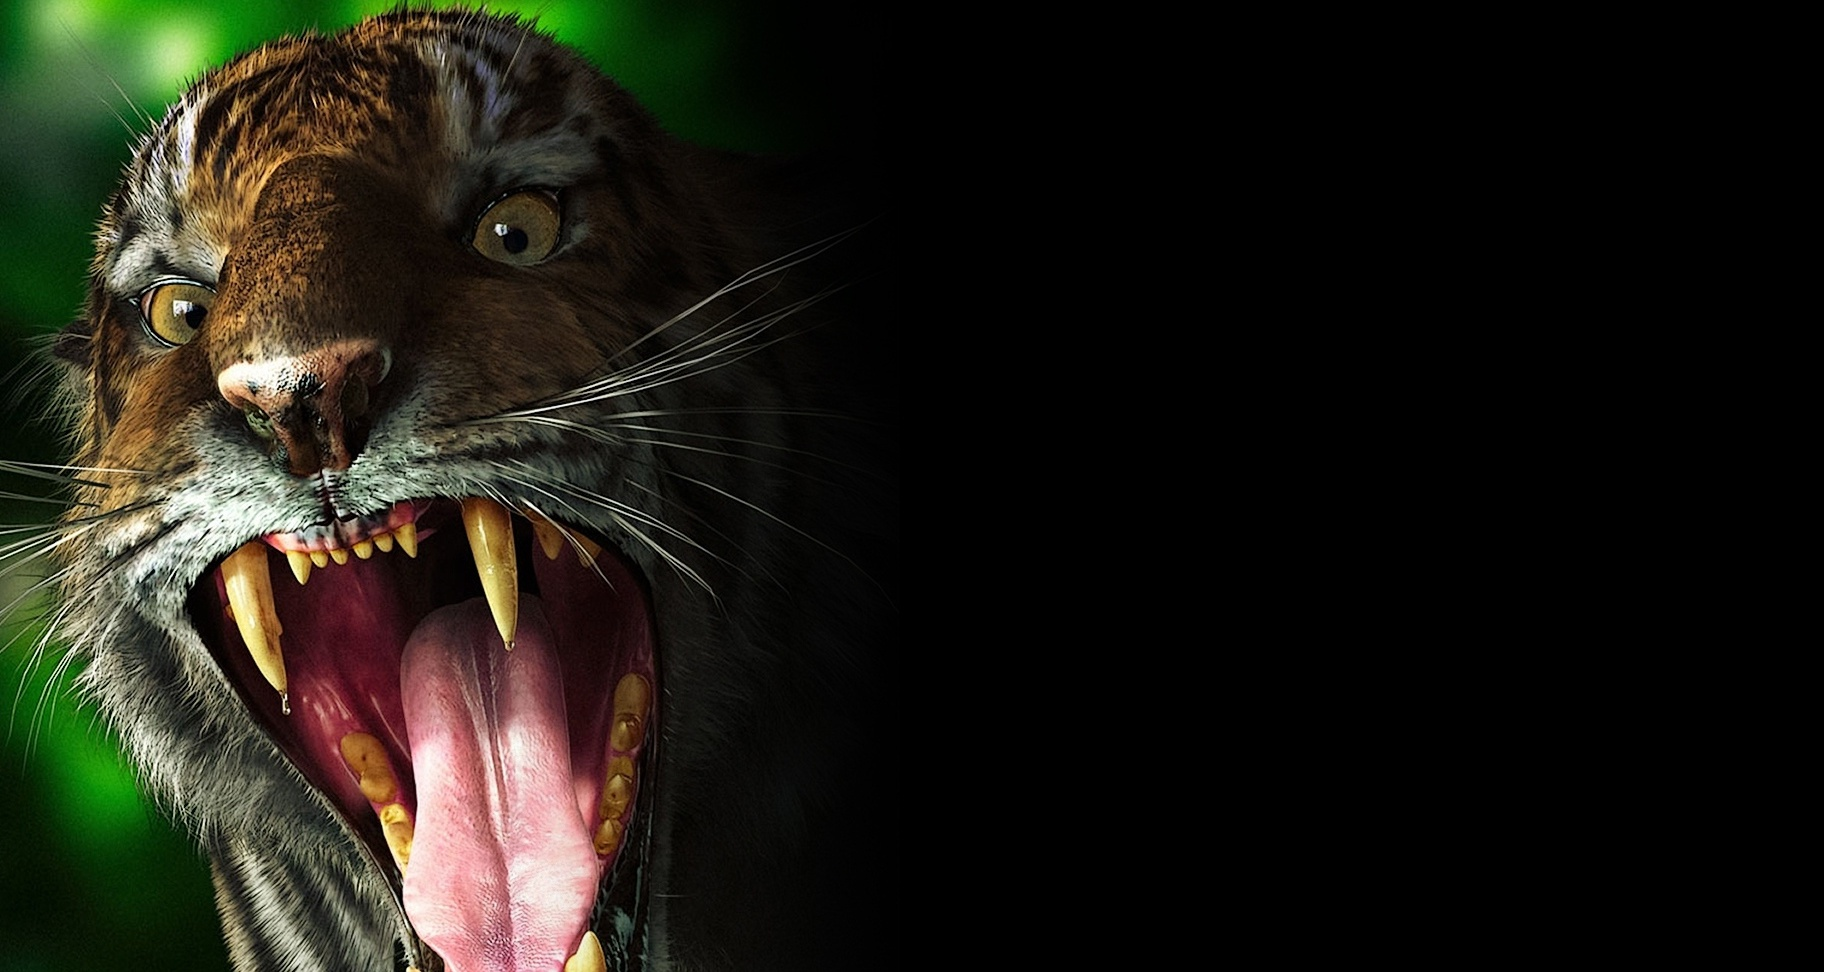 Download Wallpaper 1920x1080 Tiger, Teeth, Scary, Evil Full HD 1080p ...